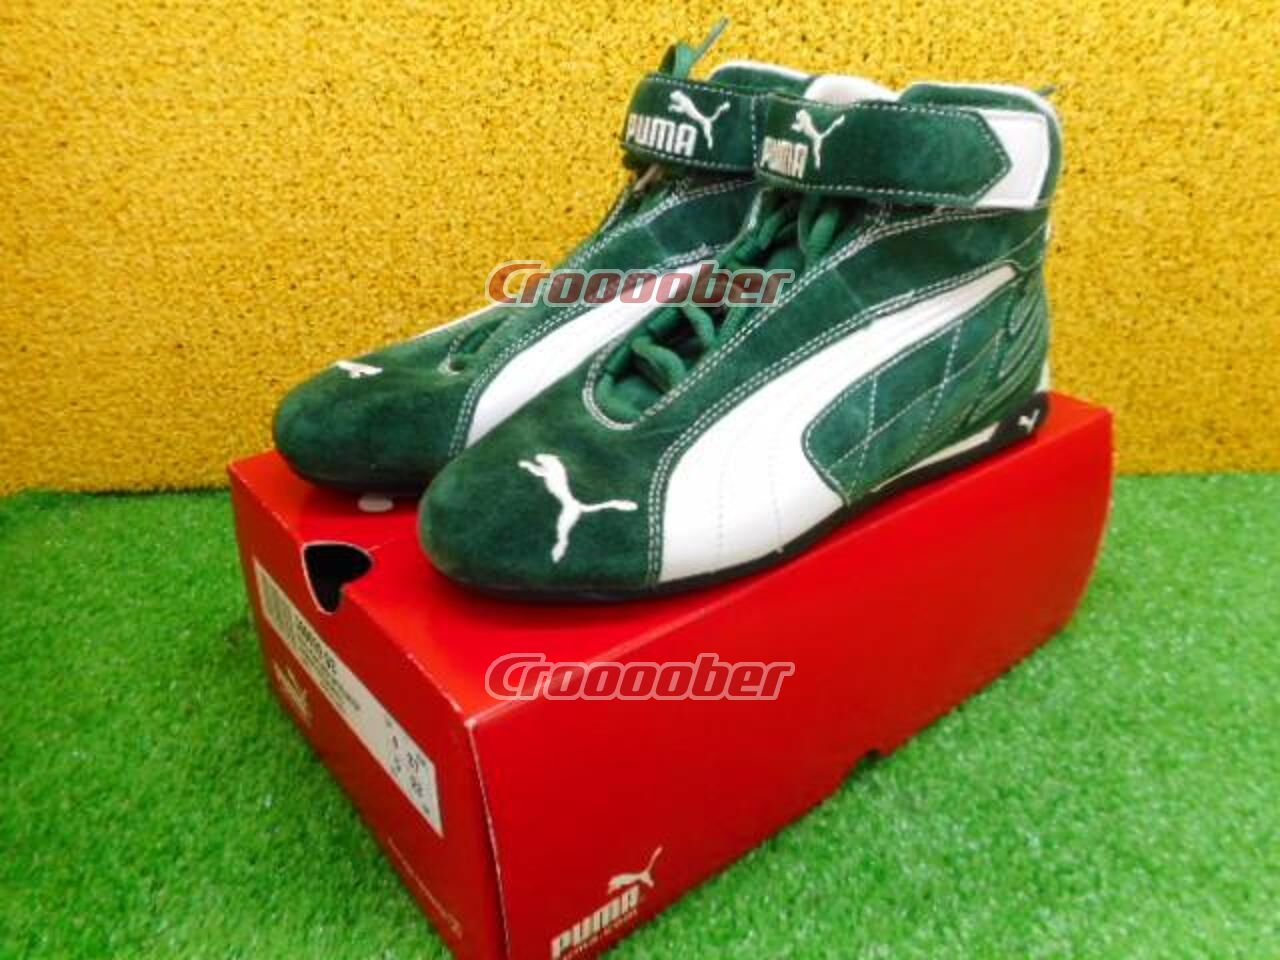 nouveau style 44a2c 38f9b PUMA 4 Wheel Racing Shoes 300629-03 Replicat Mid Specialized Suede Green /  White | Other Parts | Croooober